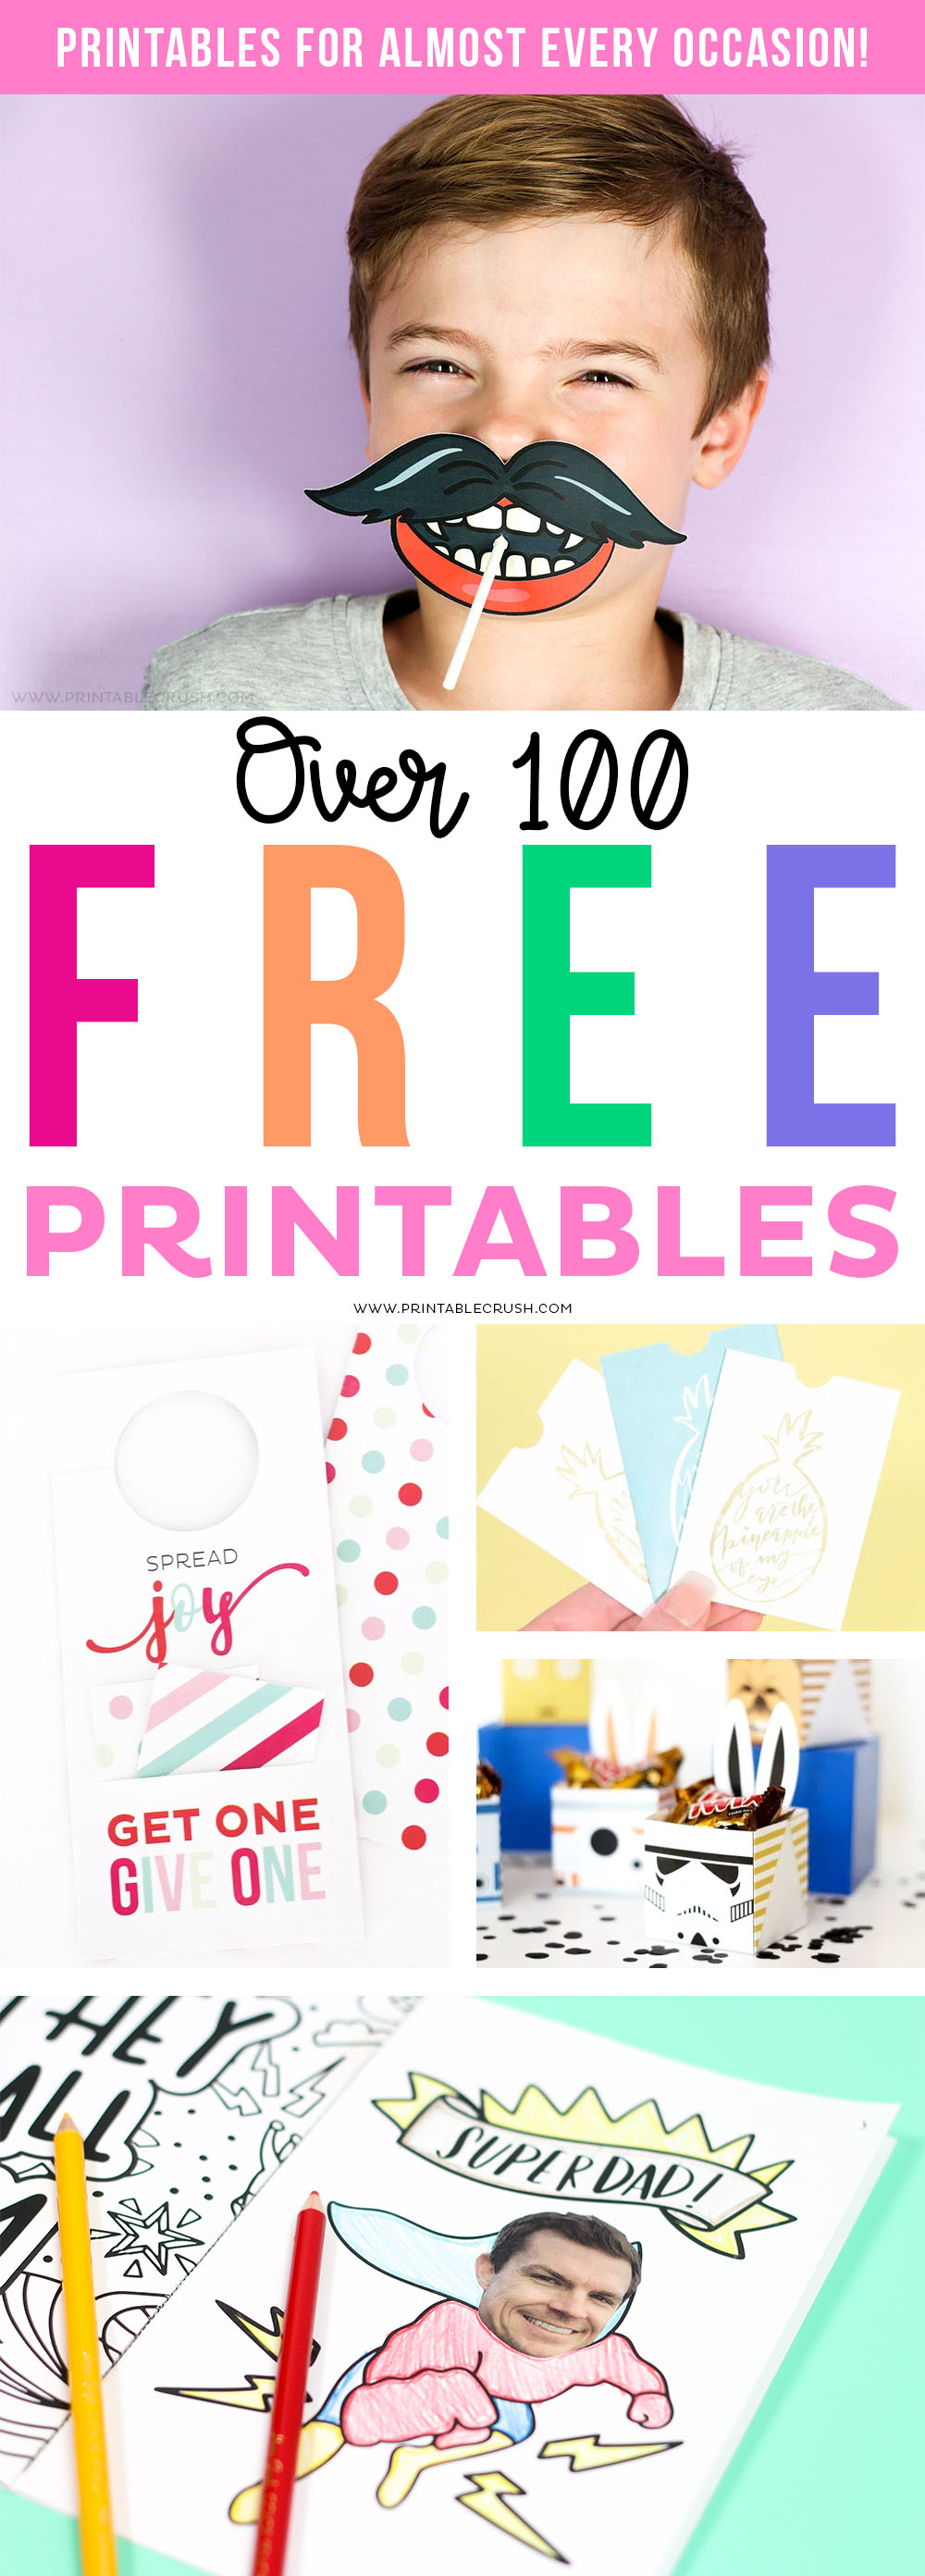 Printable Crush has over 100 FREE Printables for nearly EVERY Occasion! Get access to printable calendars, holiday printables, party printables, activities and more!